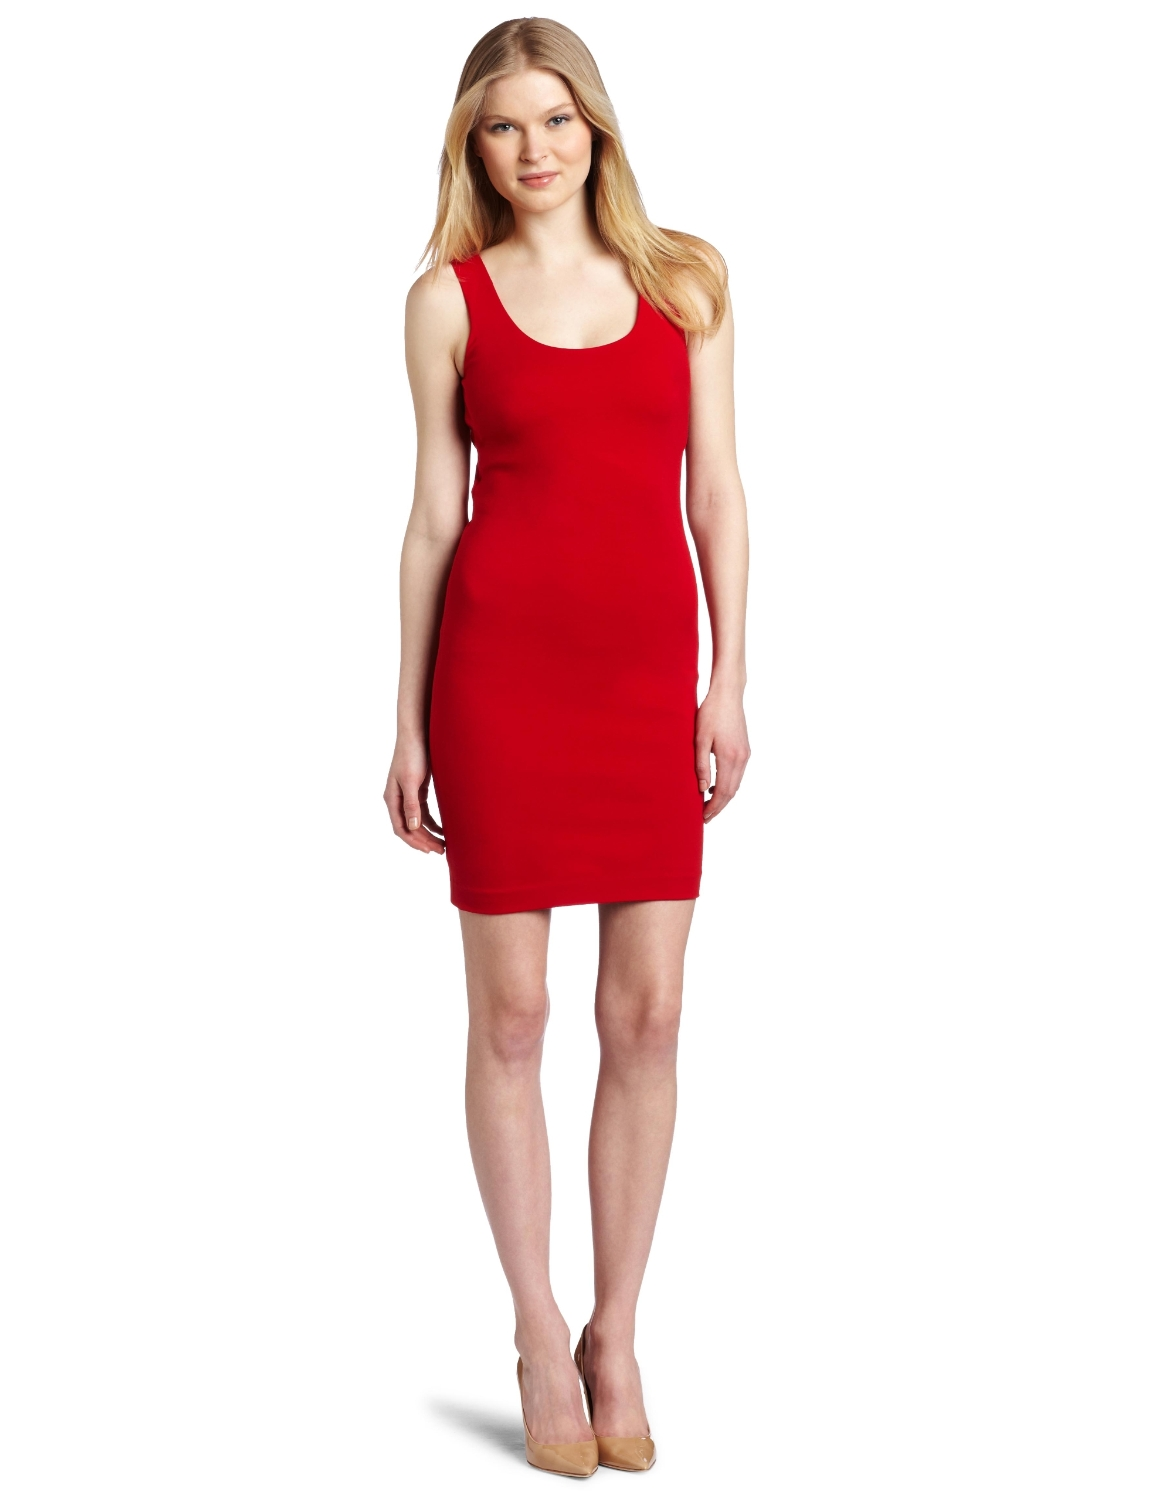 Red Dresses for Women: Styles and How to Wear Them